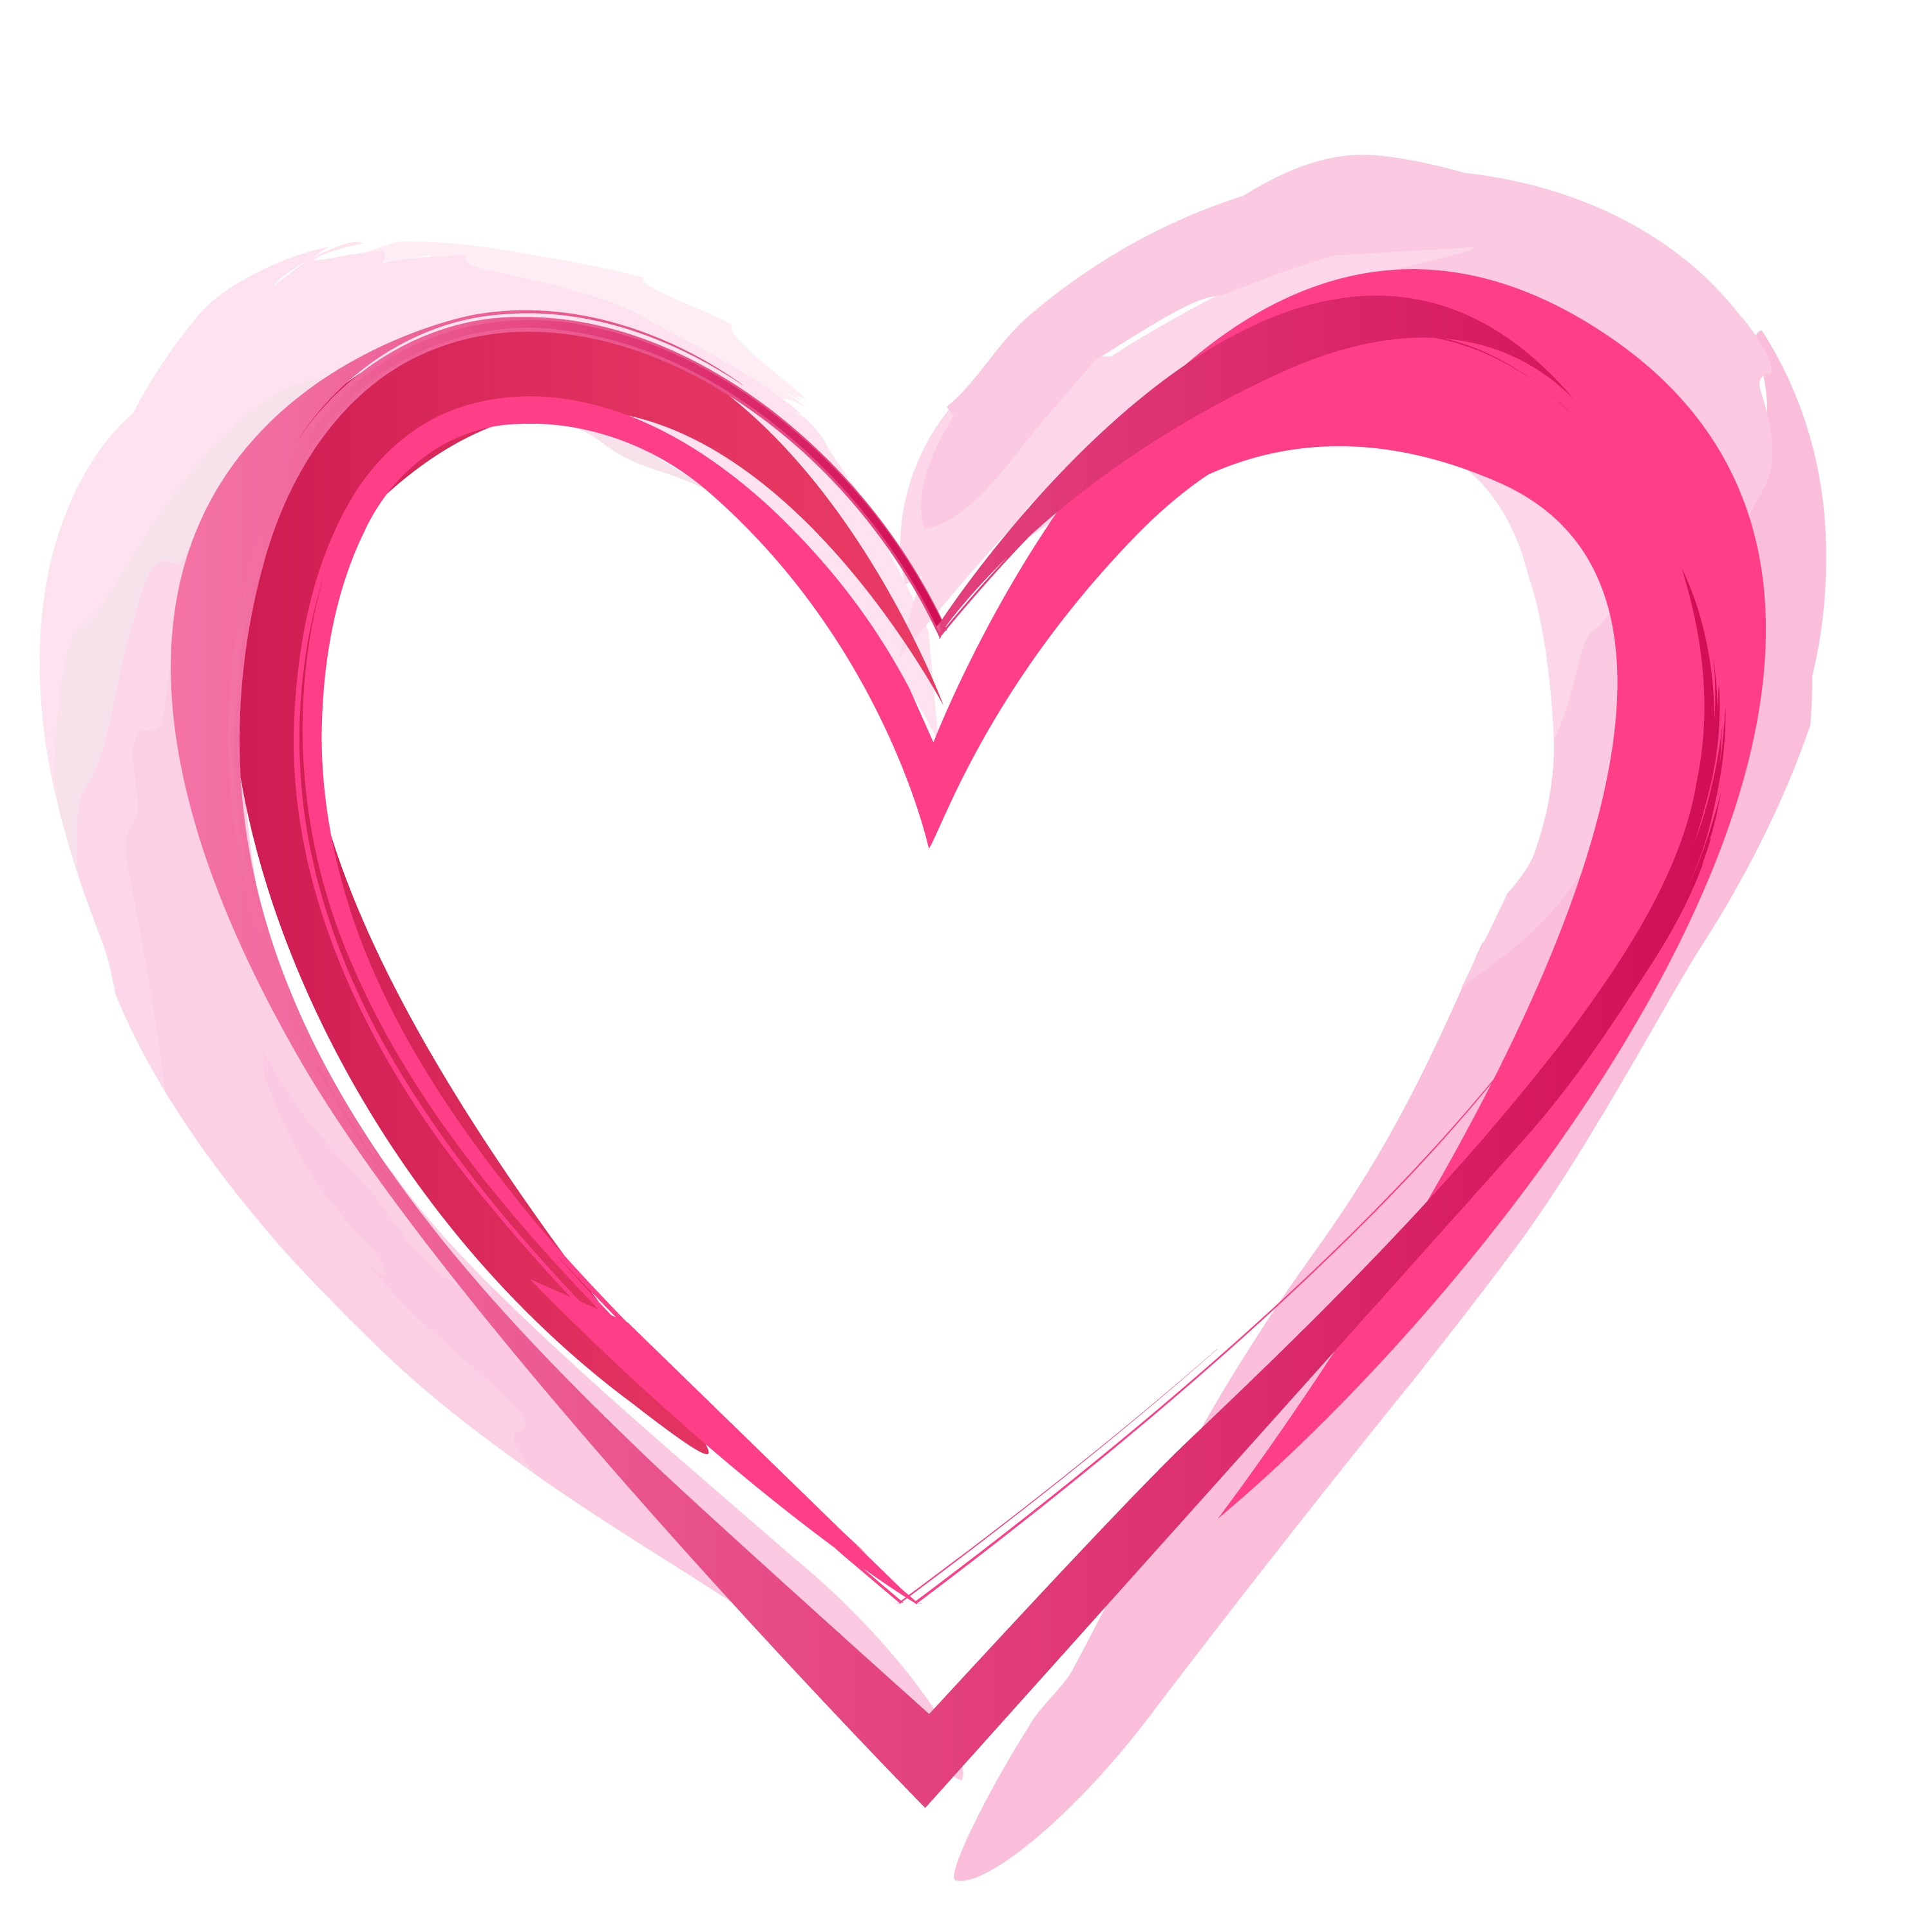 pink heart outline clipart #14